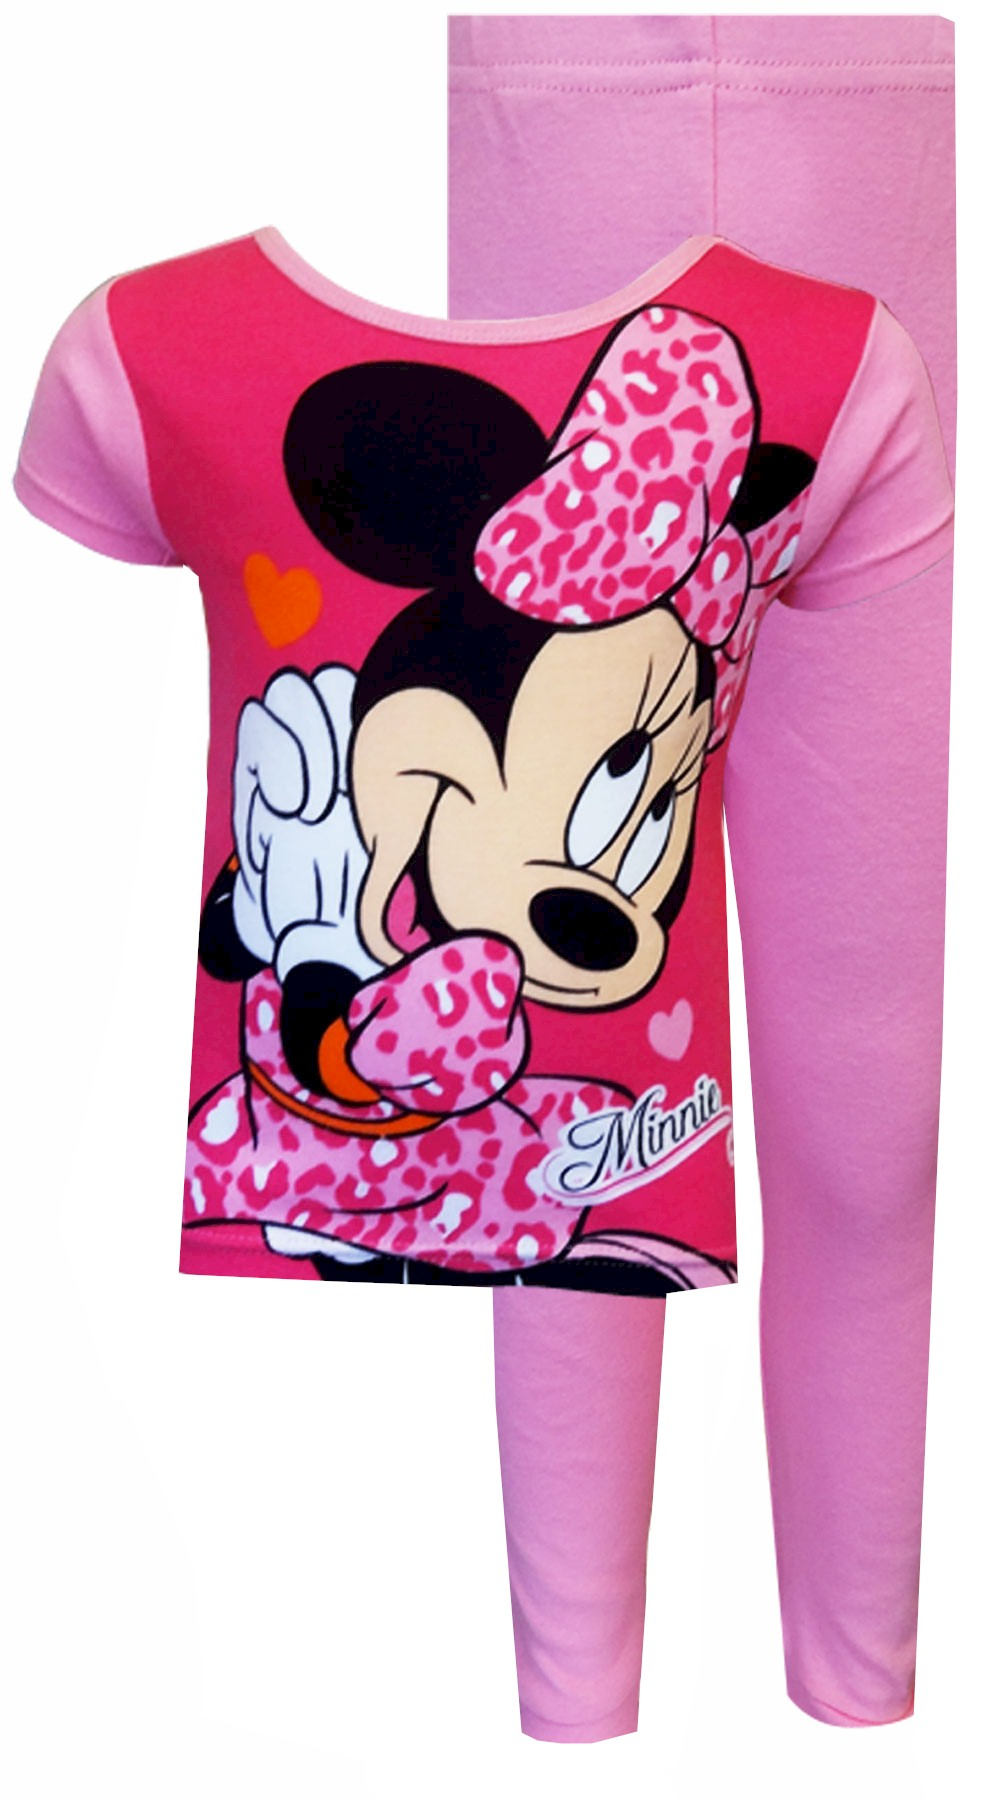 Image of Disney Minnie Mouse Leopard Love Toddler Pajamas for girls